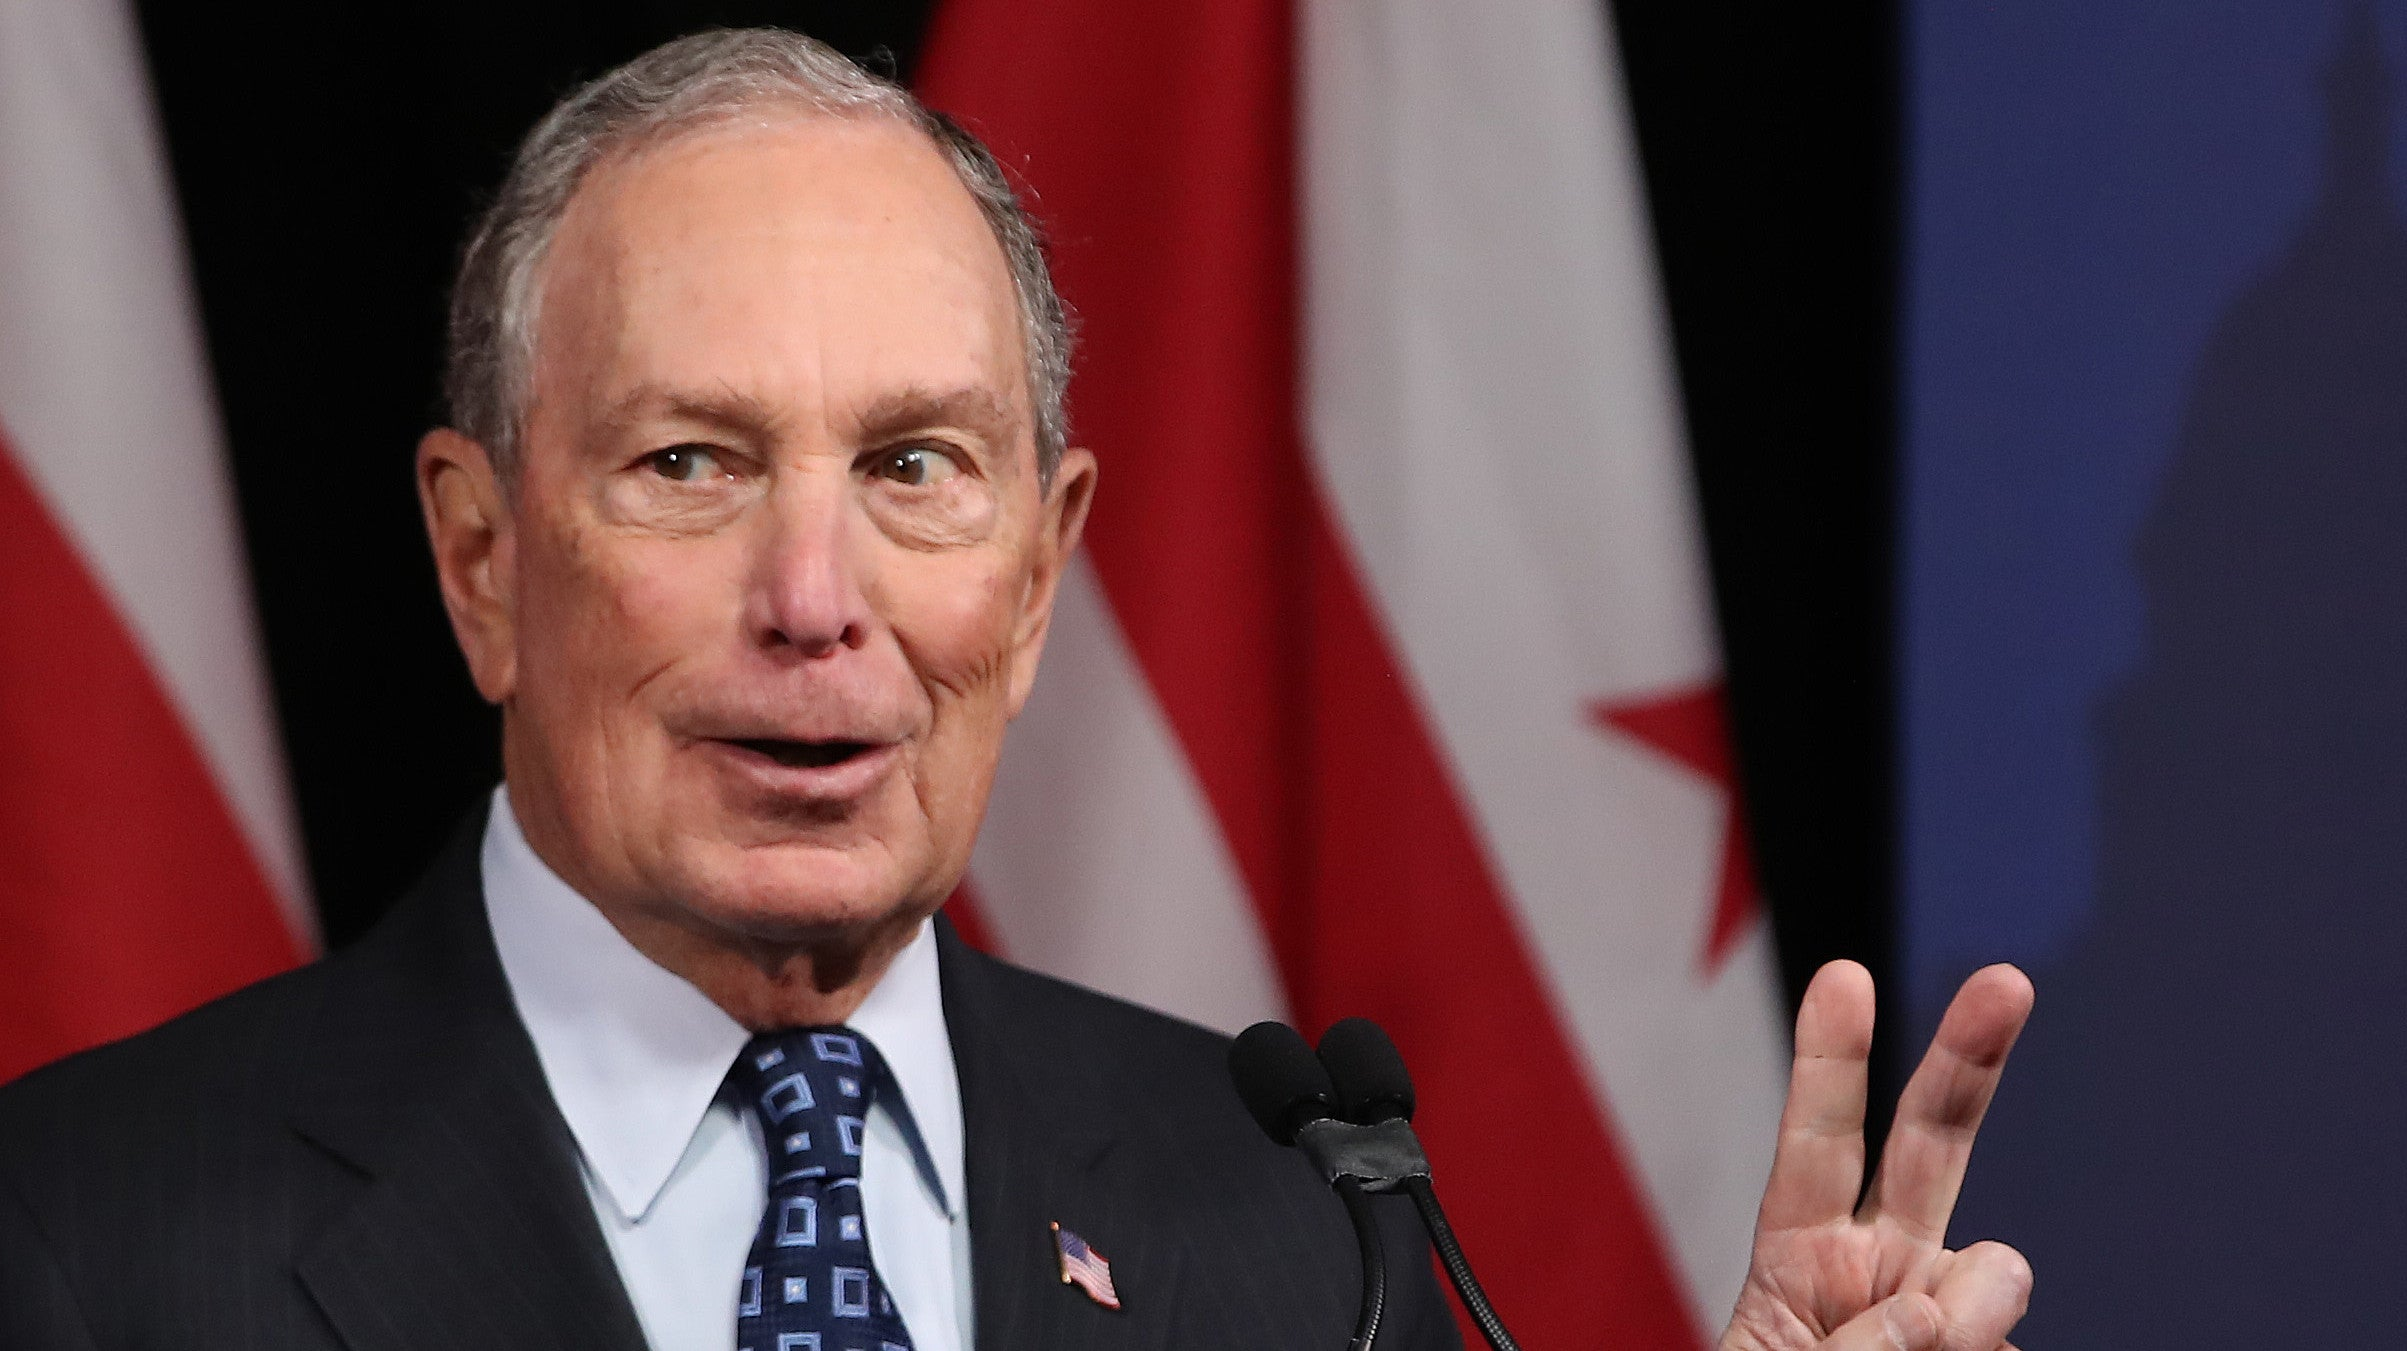 FuckJerry Pivots From Stealing Content To Helping Bloomberg Buy Elections